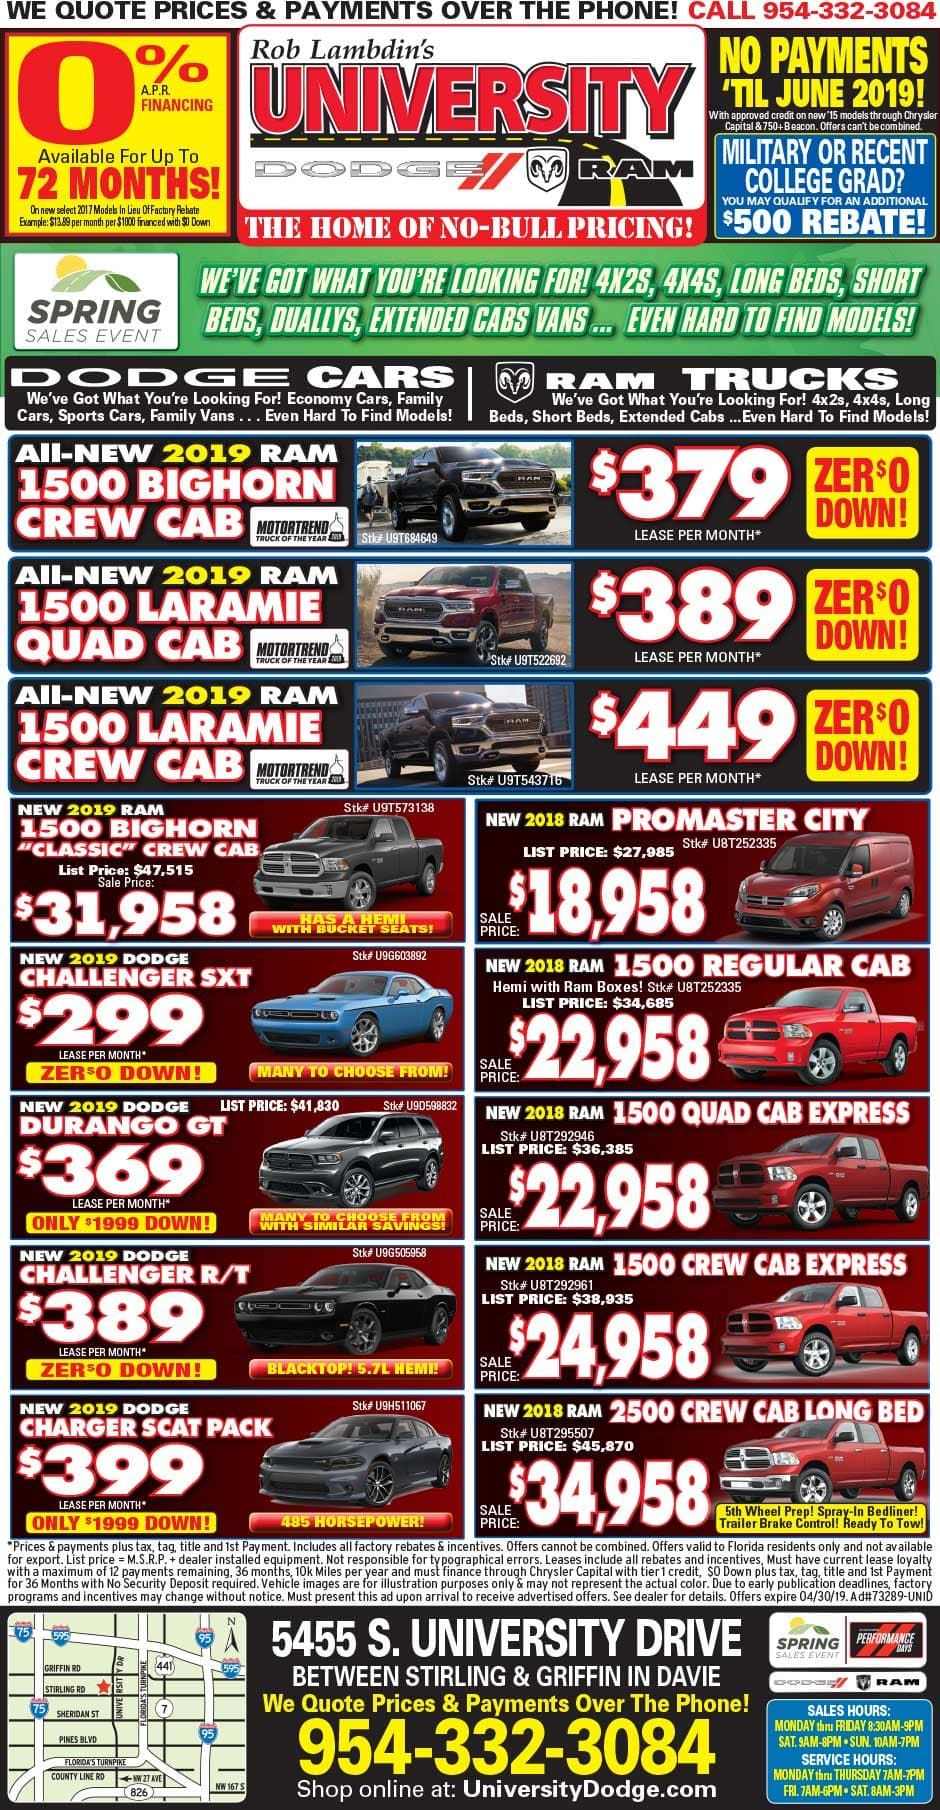 University Dodge/RAM Weekly Newspaper Specials!